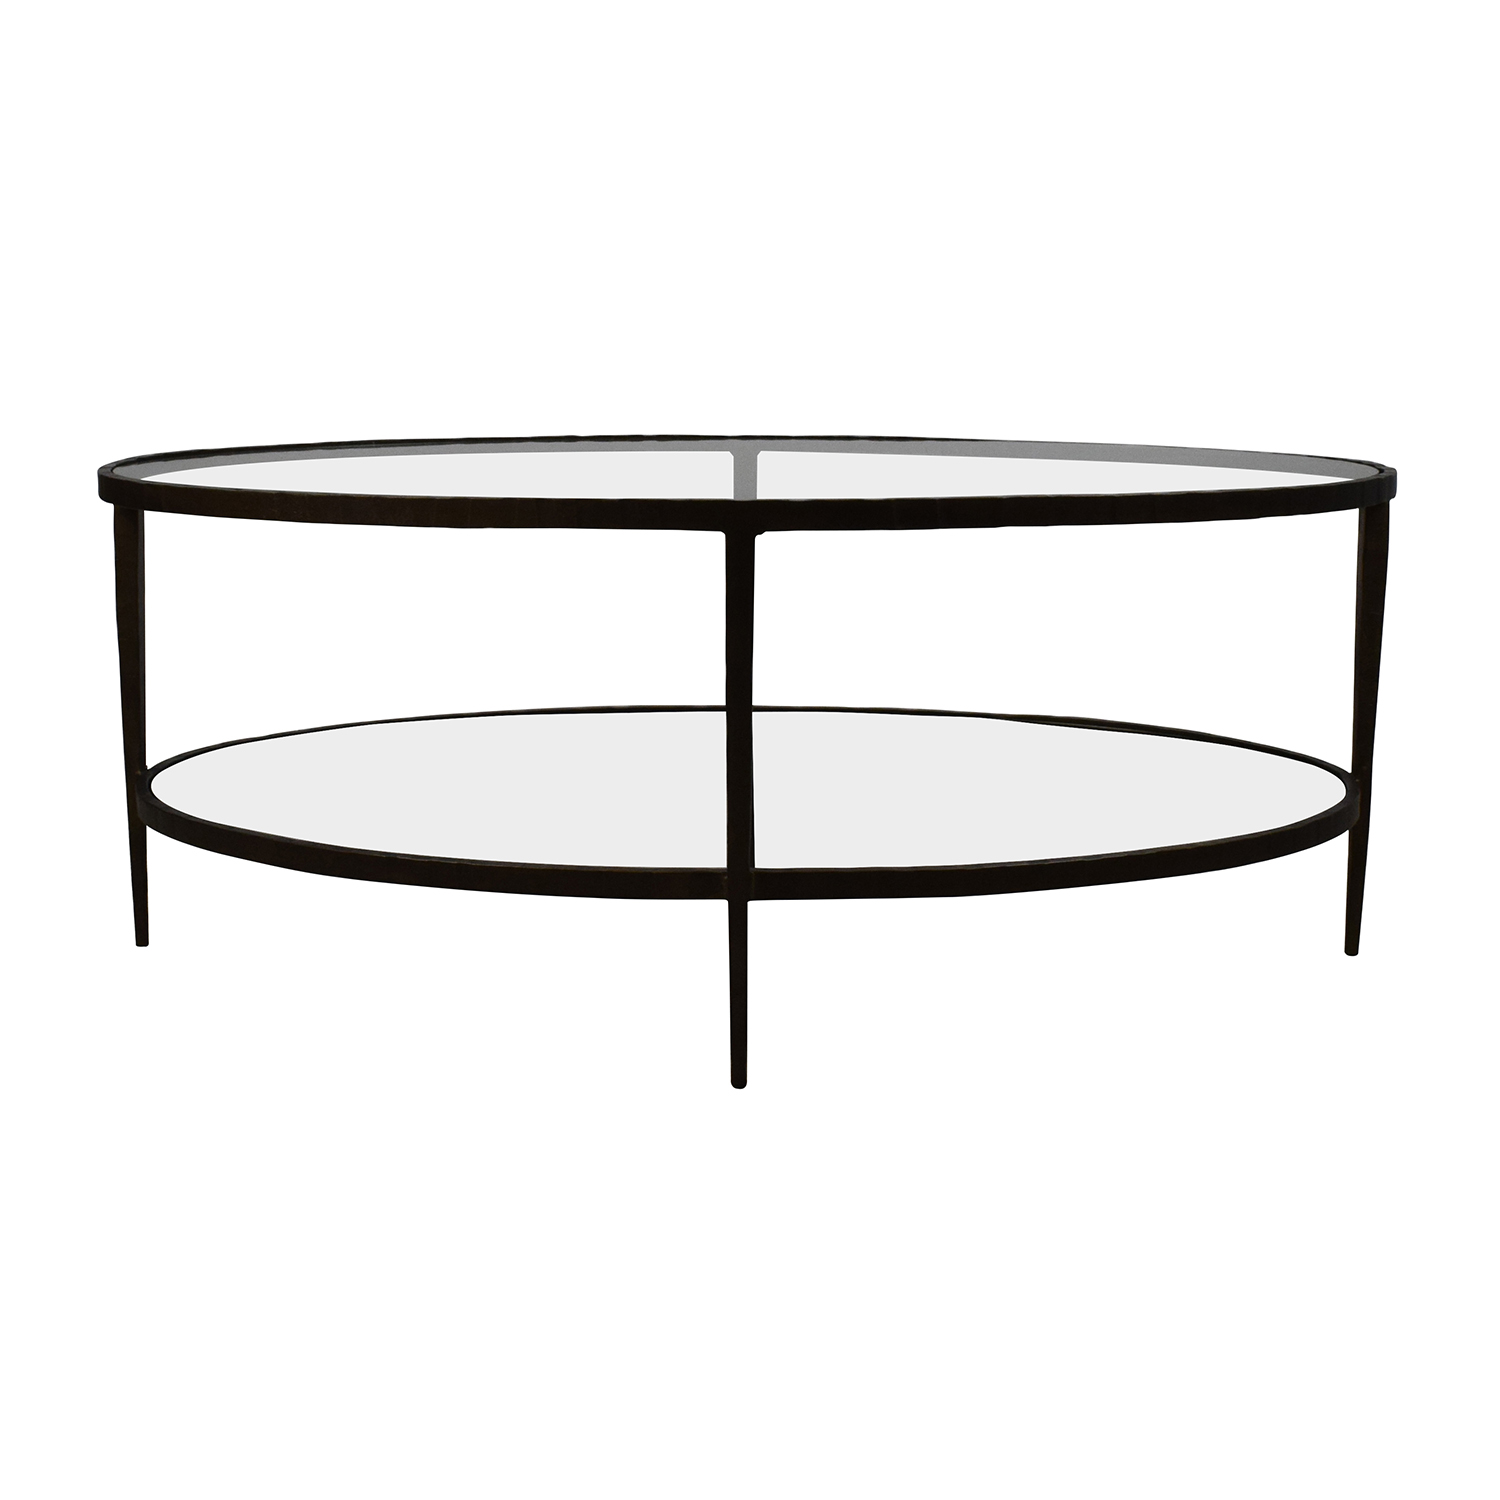 Crate & Barrel Crate & Barrel Clairmont Glass Coffee Table second hand